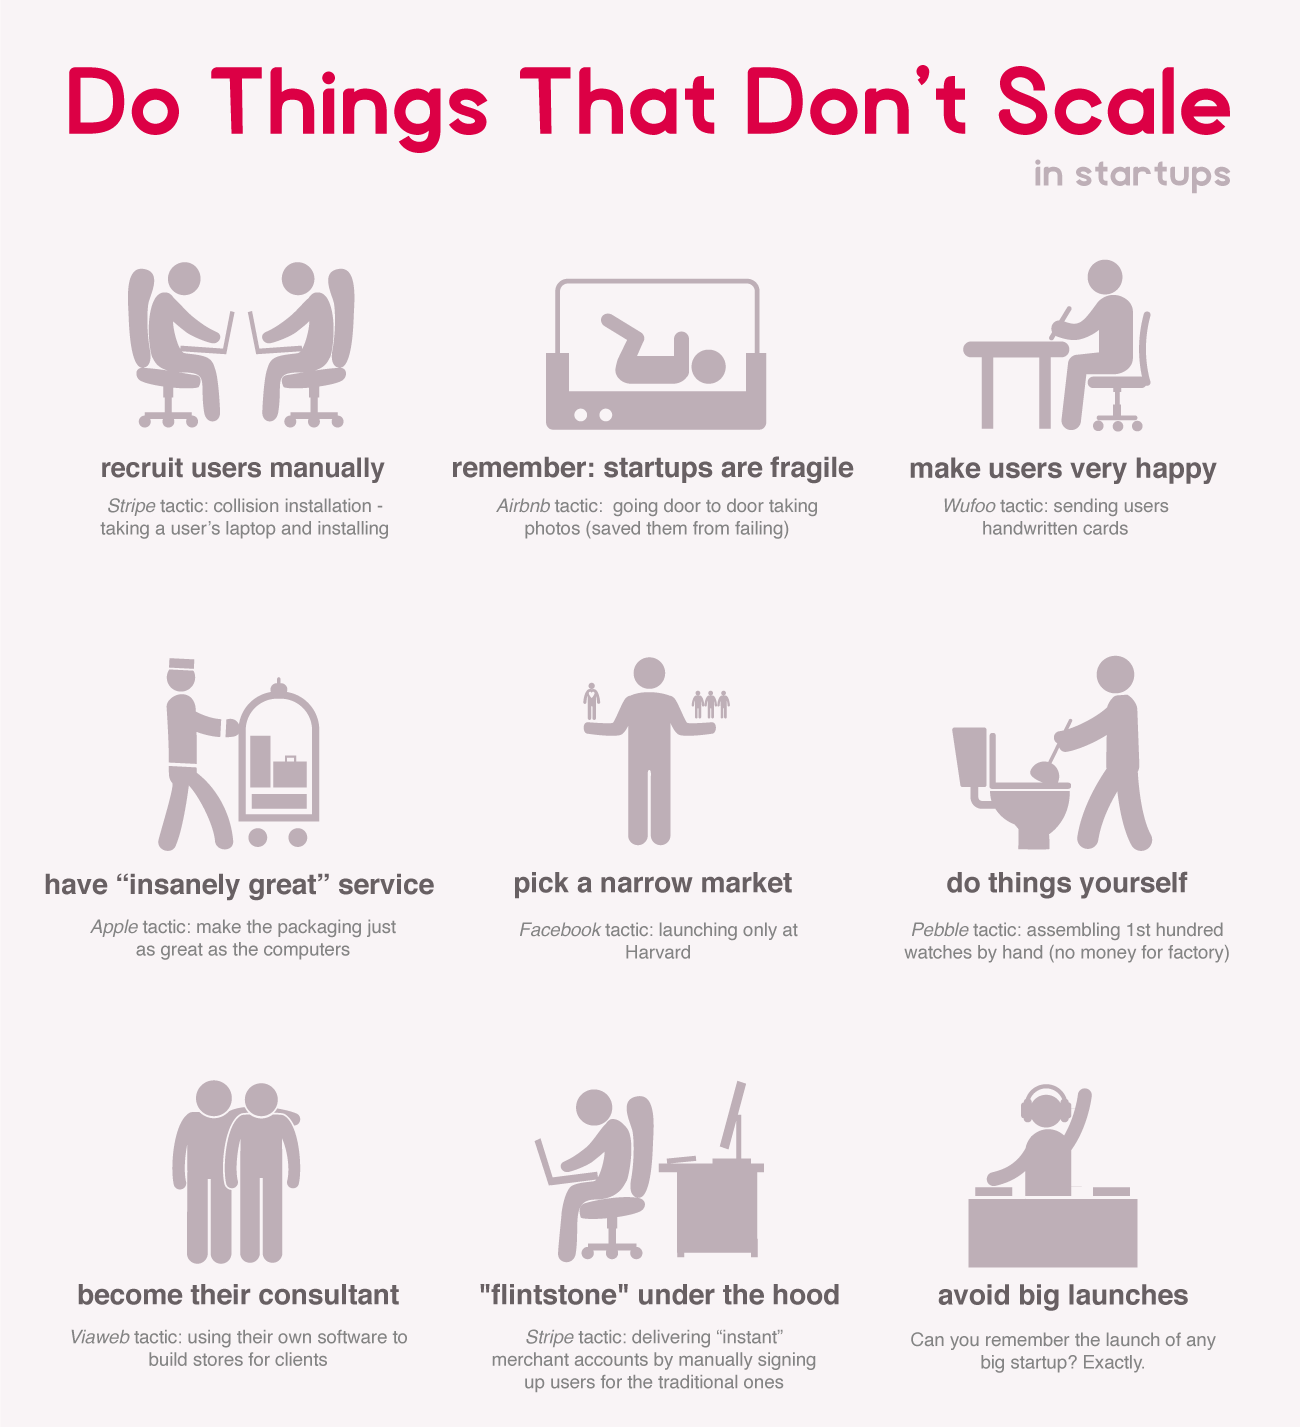 Non-scalable marketing tactics for startups